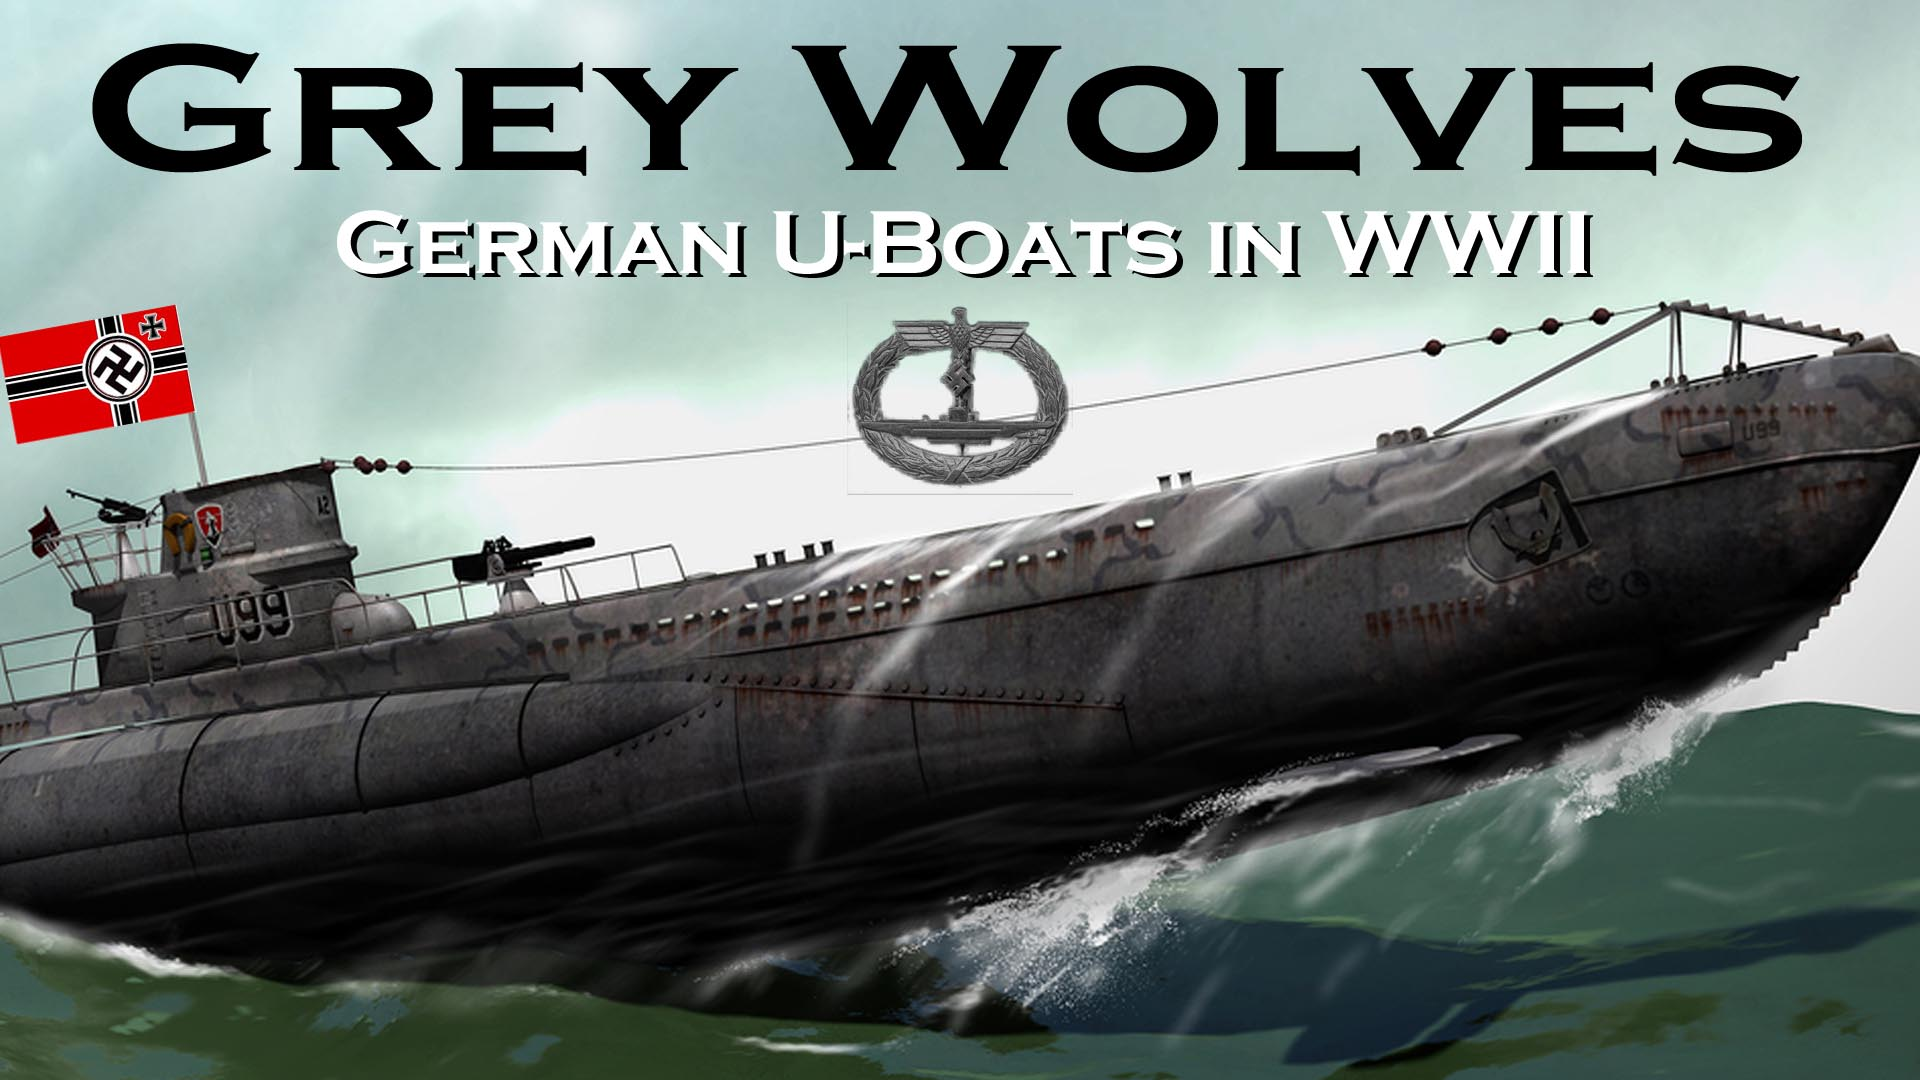 The Grey Wolves -